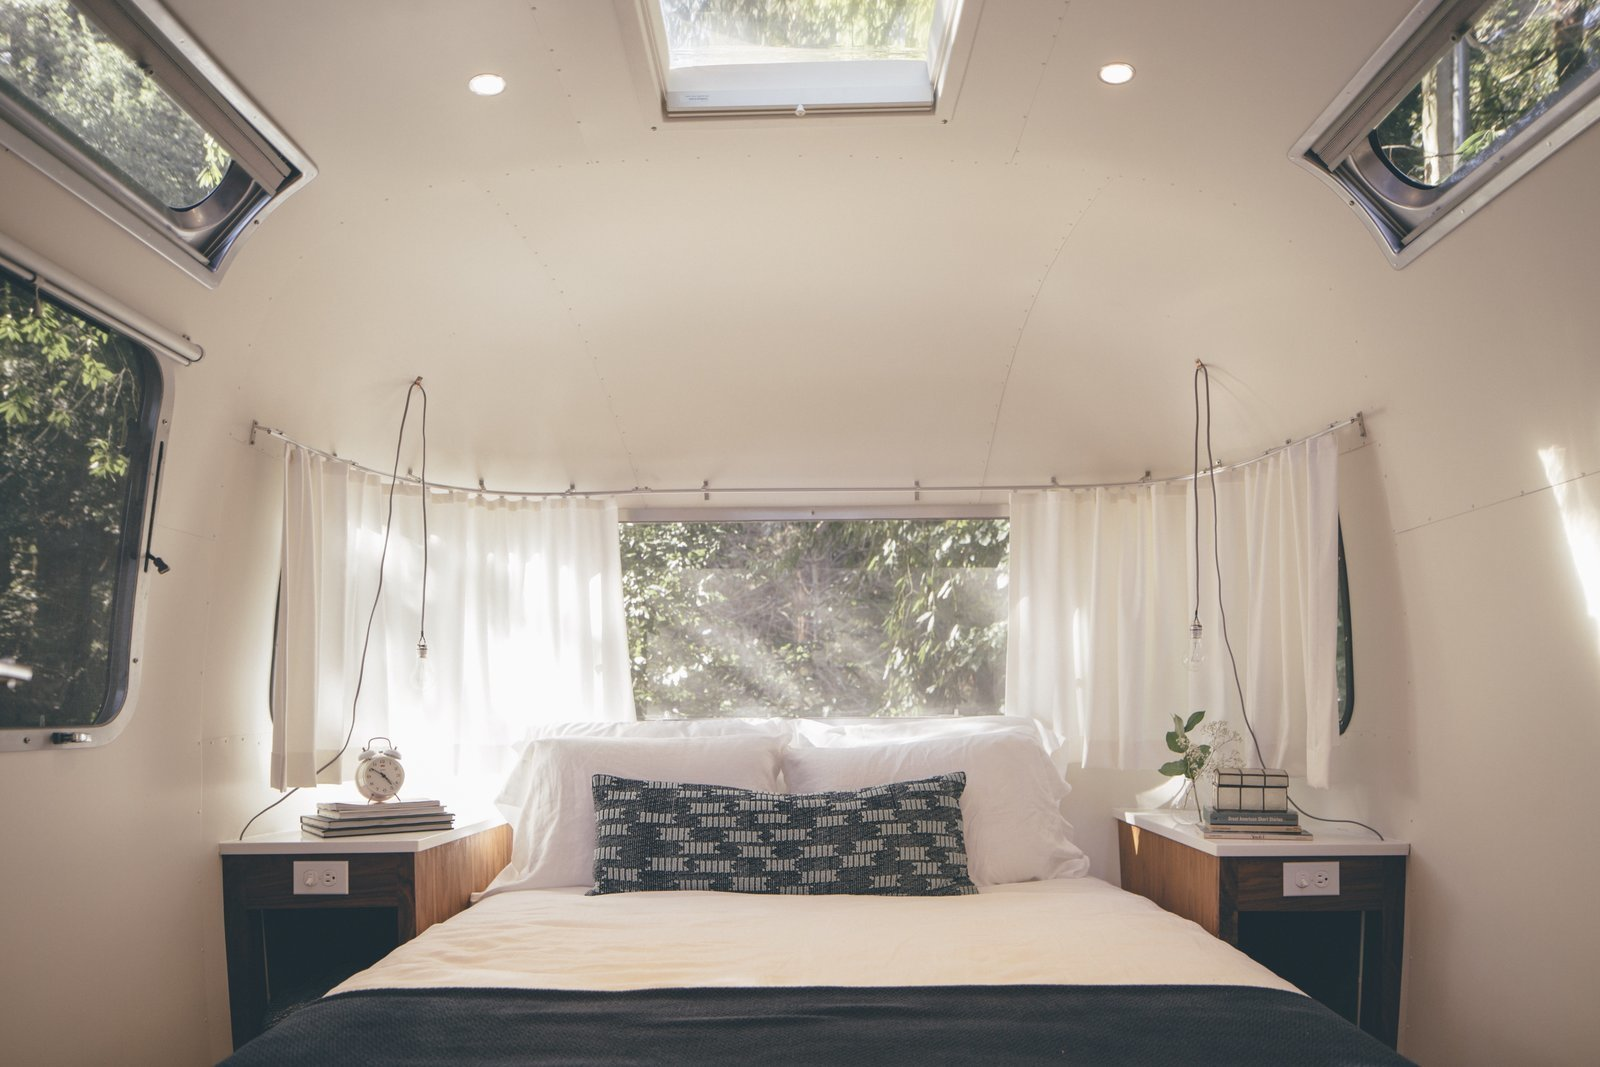 Bedroom, Bed, Ceiling Lighting, Recessed Lighting, Night Stands, and Pendant Lighting Airstream rentals by AutoCamp  Photo 4 of 11 in 10 Cool Trailers and Campervans You Can Rent For Your Next Adventure